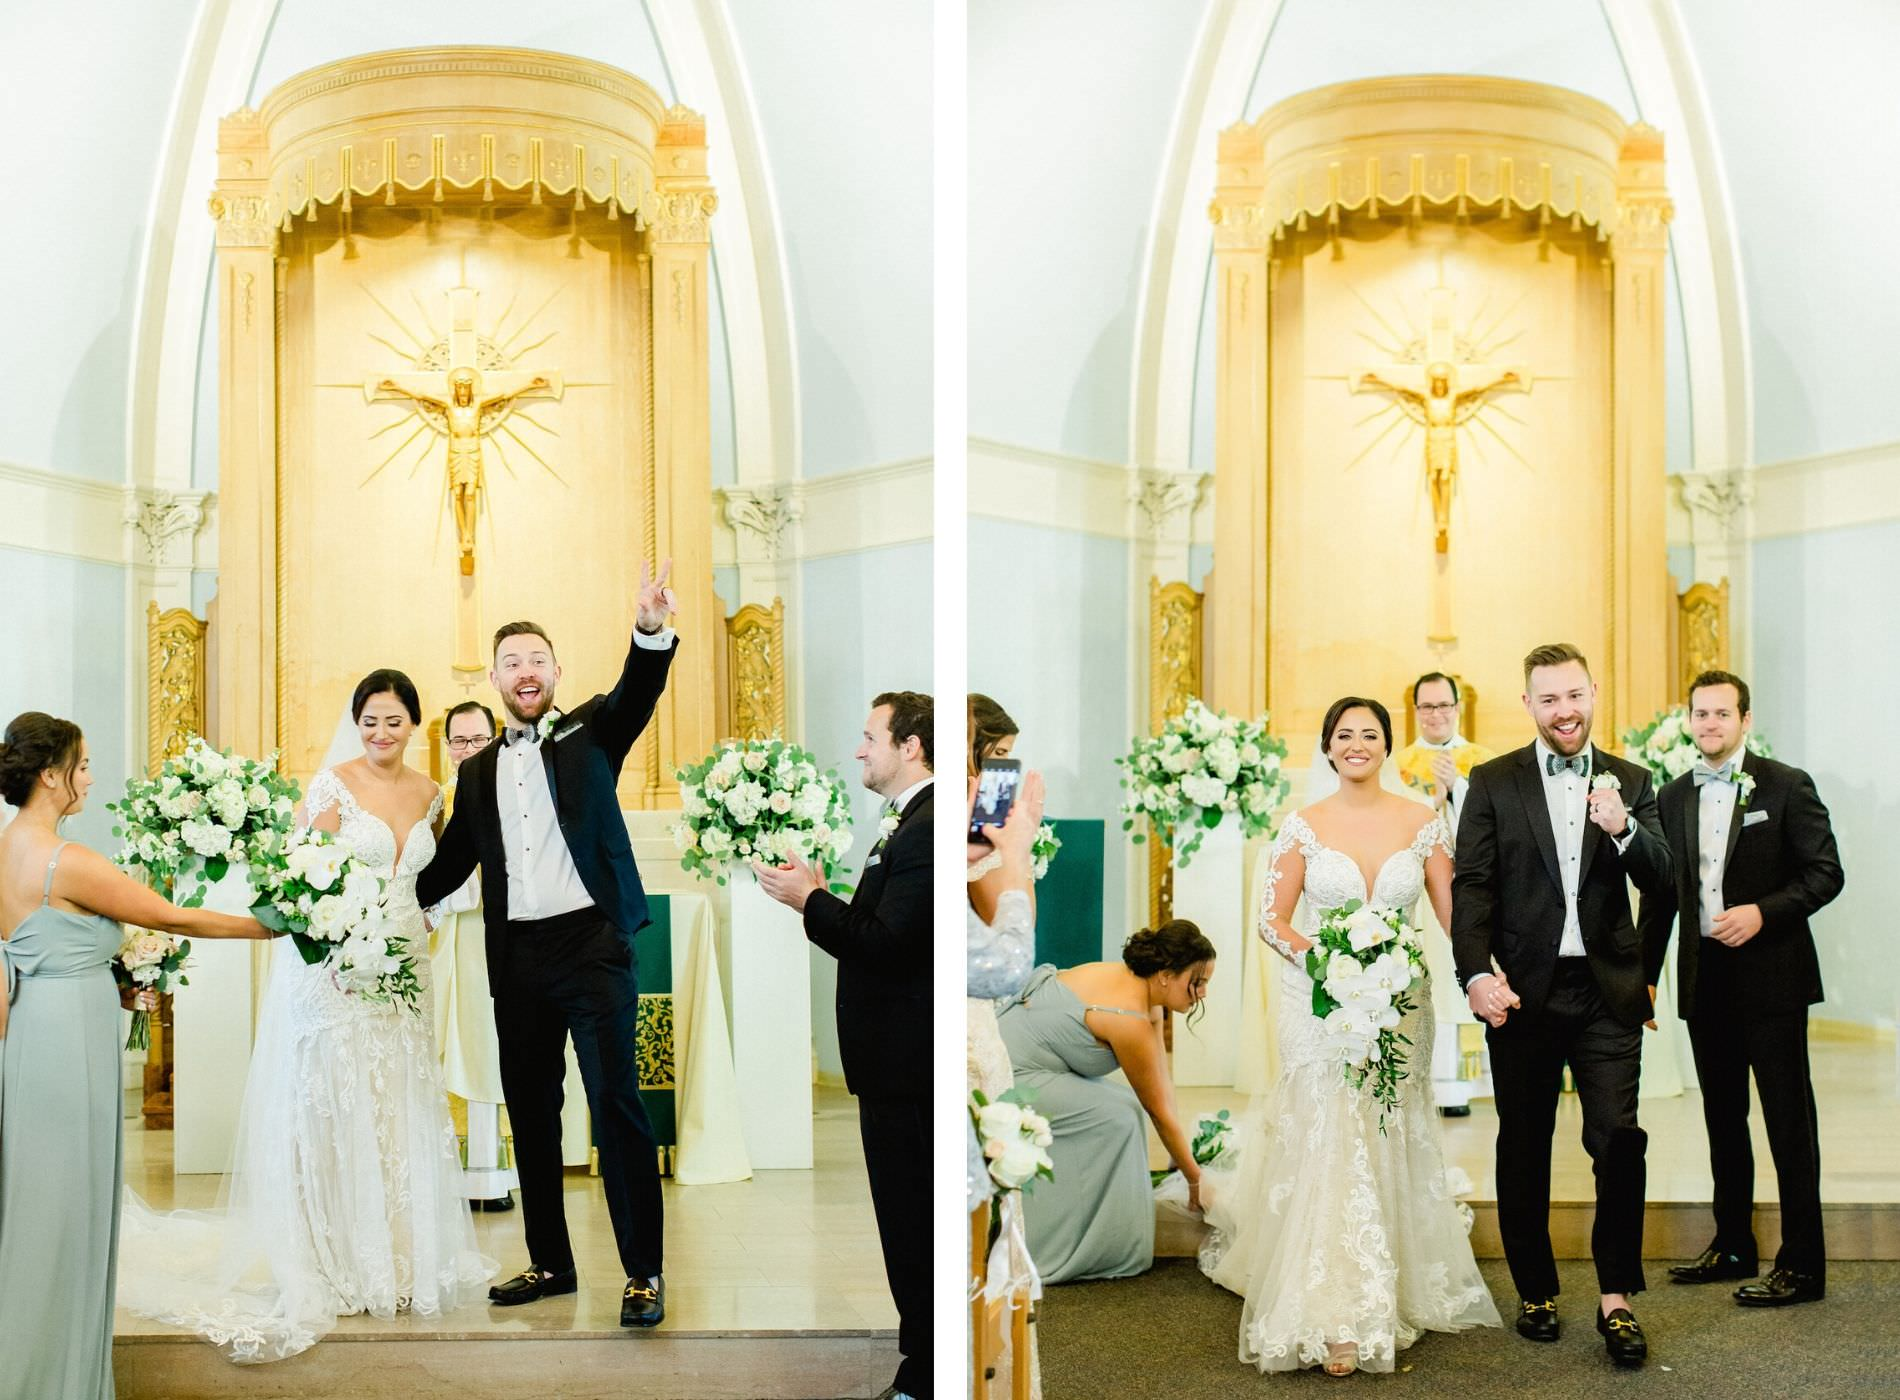 Florida Bride and Groom Just Married at Wedding Recessional at All Saints Catholic School in South Tampa, Ceremony Altar Decorated with White, Ivory, and Blush Pink Florals, Bride Wearing Illusion Lace Sleeve Fit and Flare Dress | Downtown Tampa Wedding Planner Breezin' Weddings